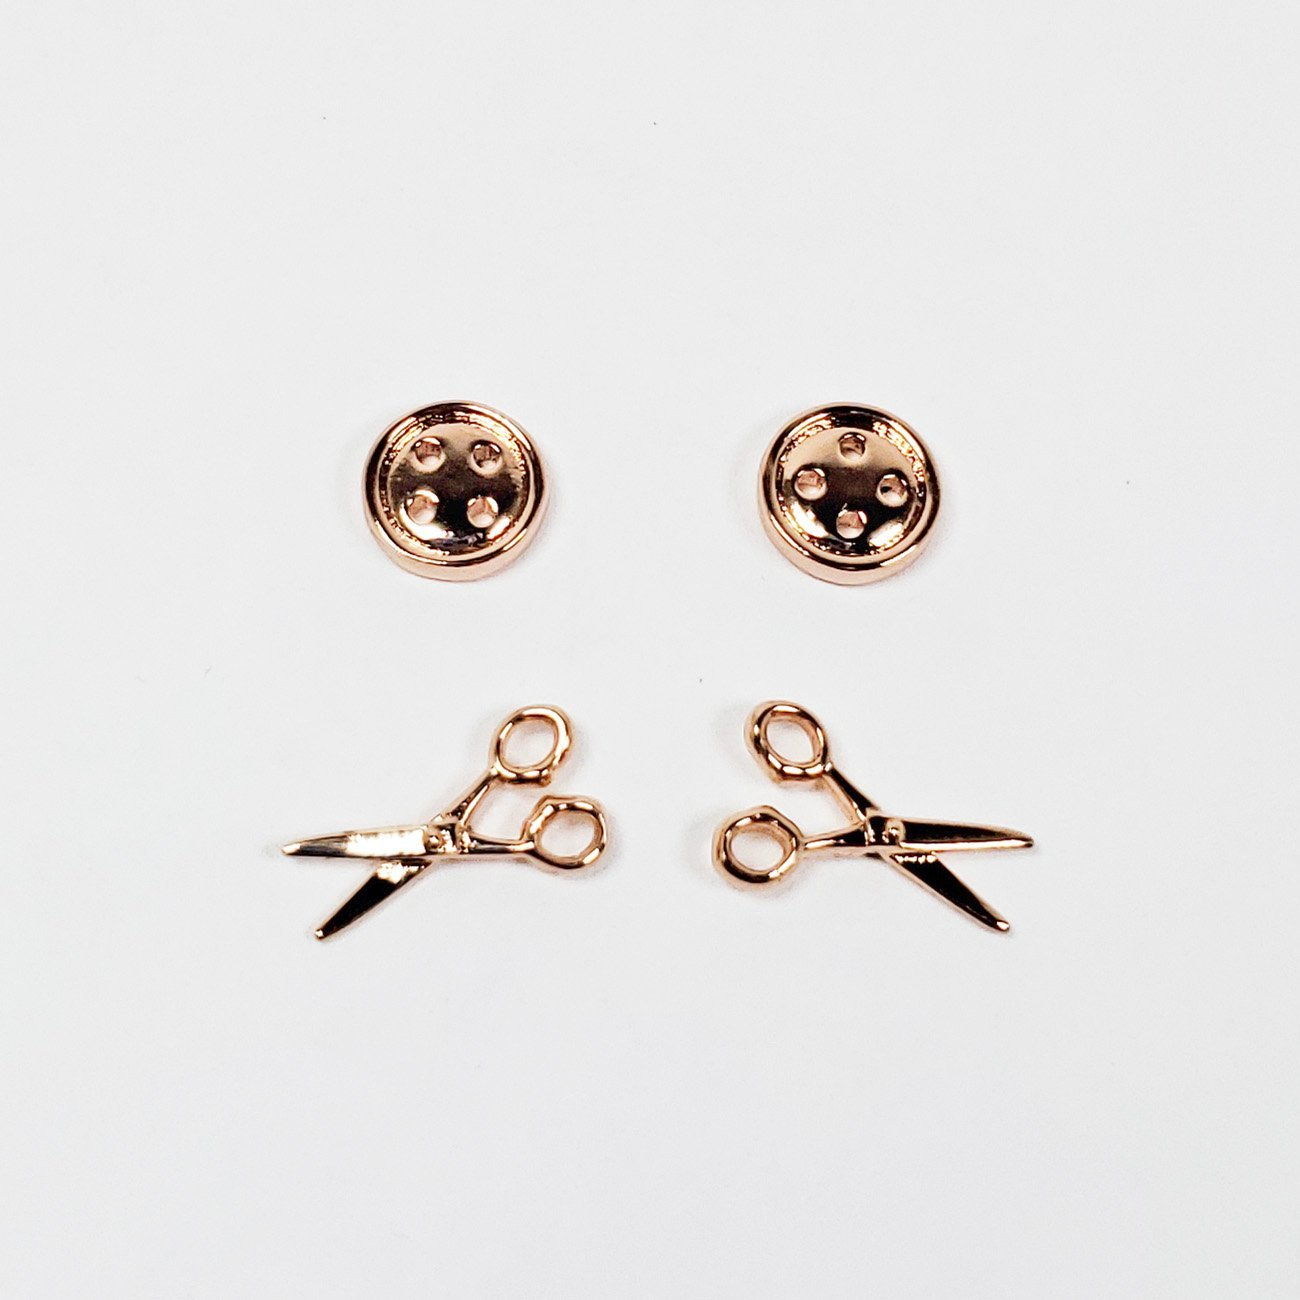 Button & Scissors Post Earrings Rose Gold Set of 2 from the Quilt Spot